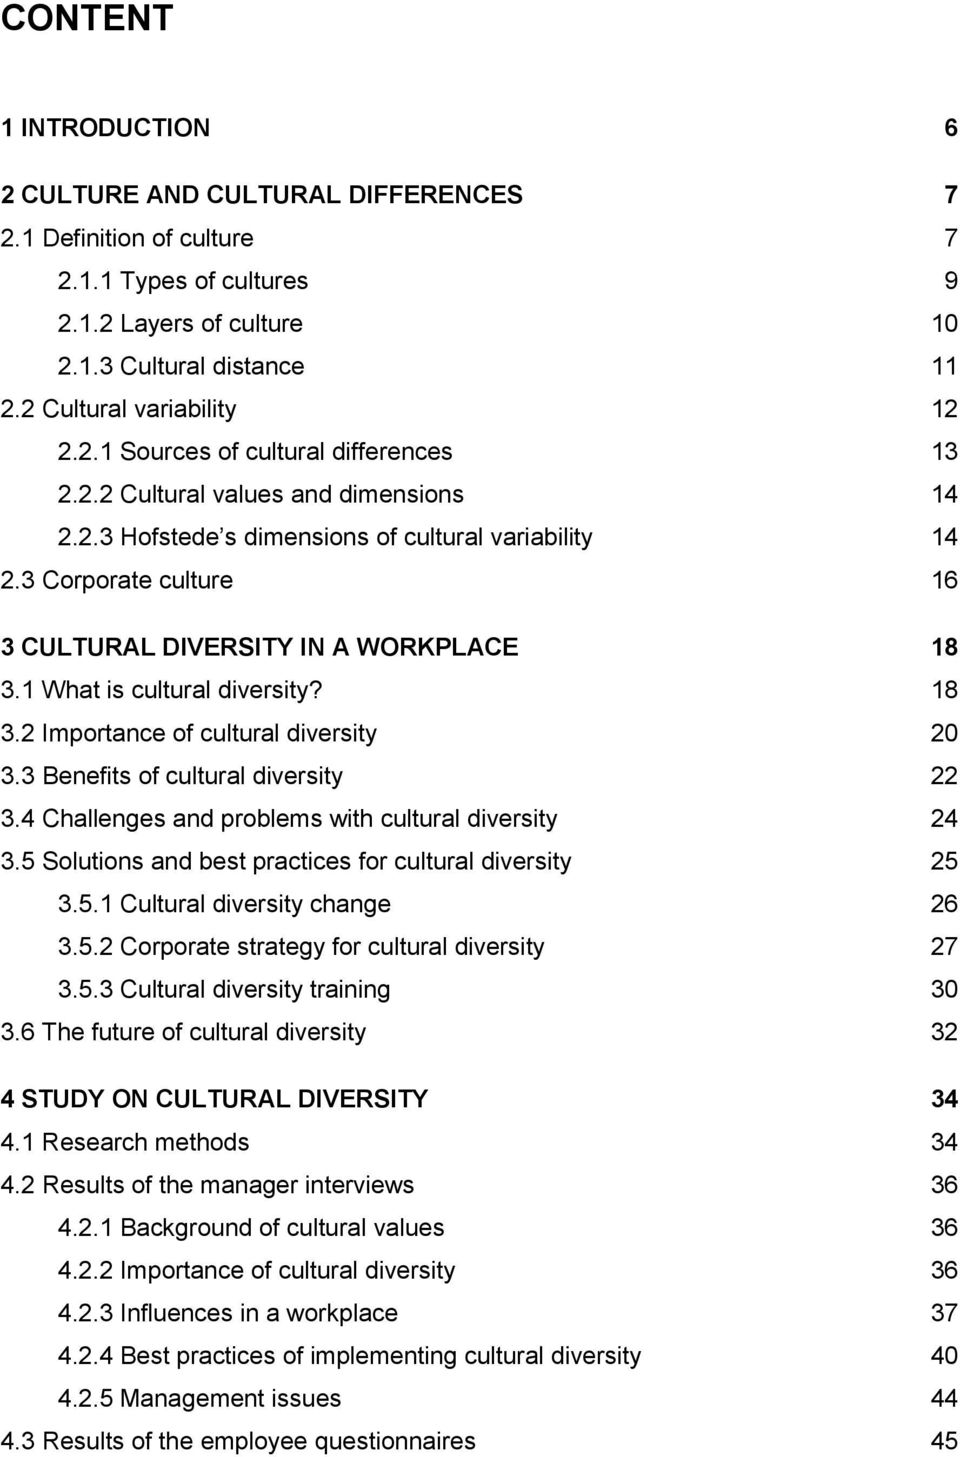 cultural diversity in hospitality management - pdf